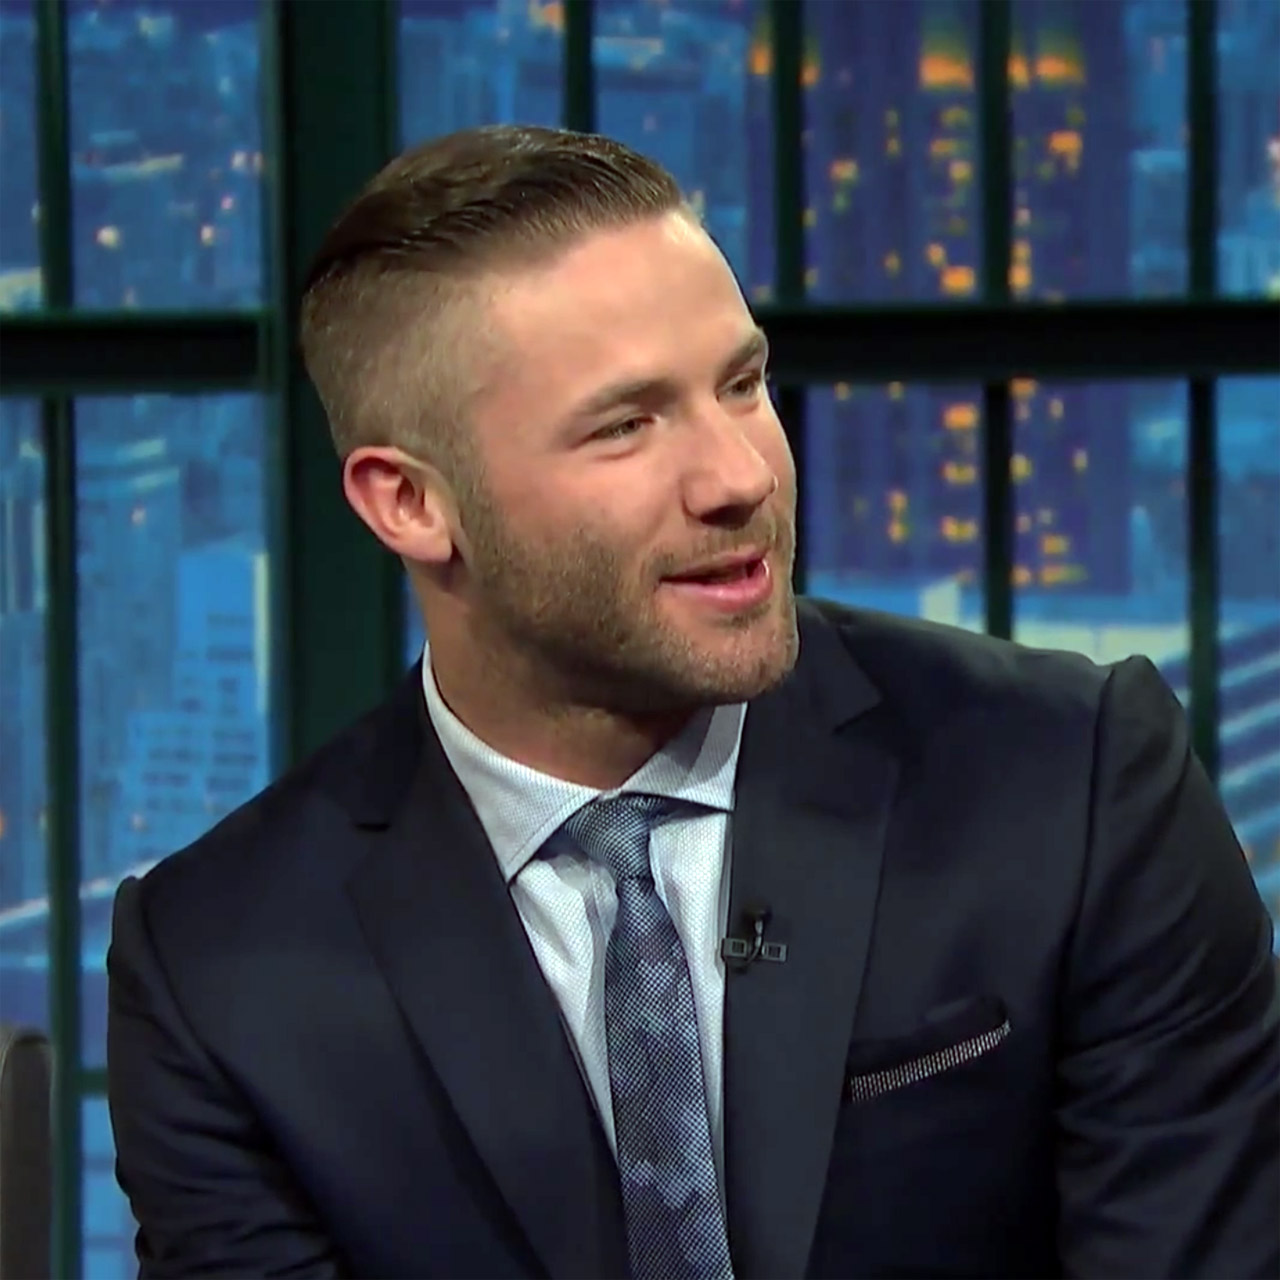 Patriots wide receiver Julian Edelman On Late Night with Seth Meyers